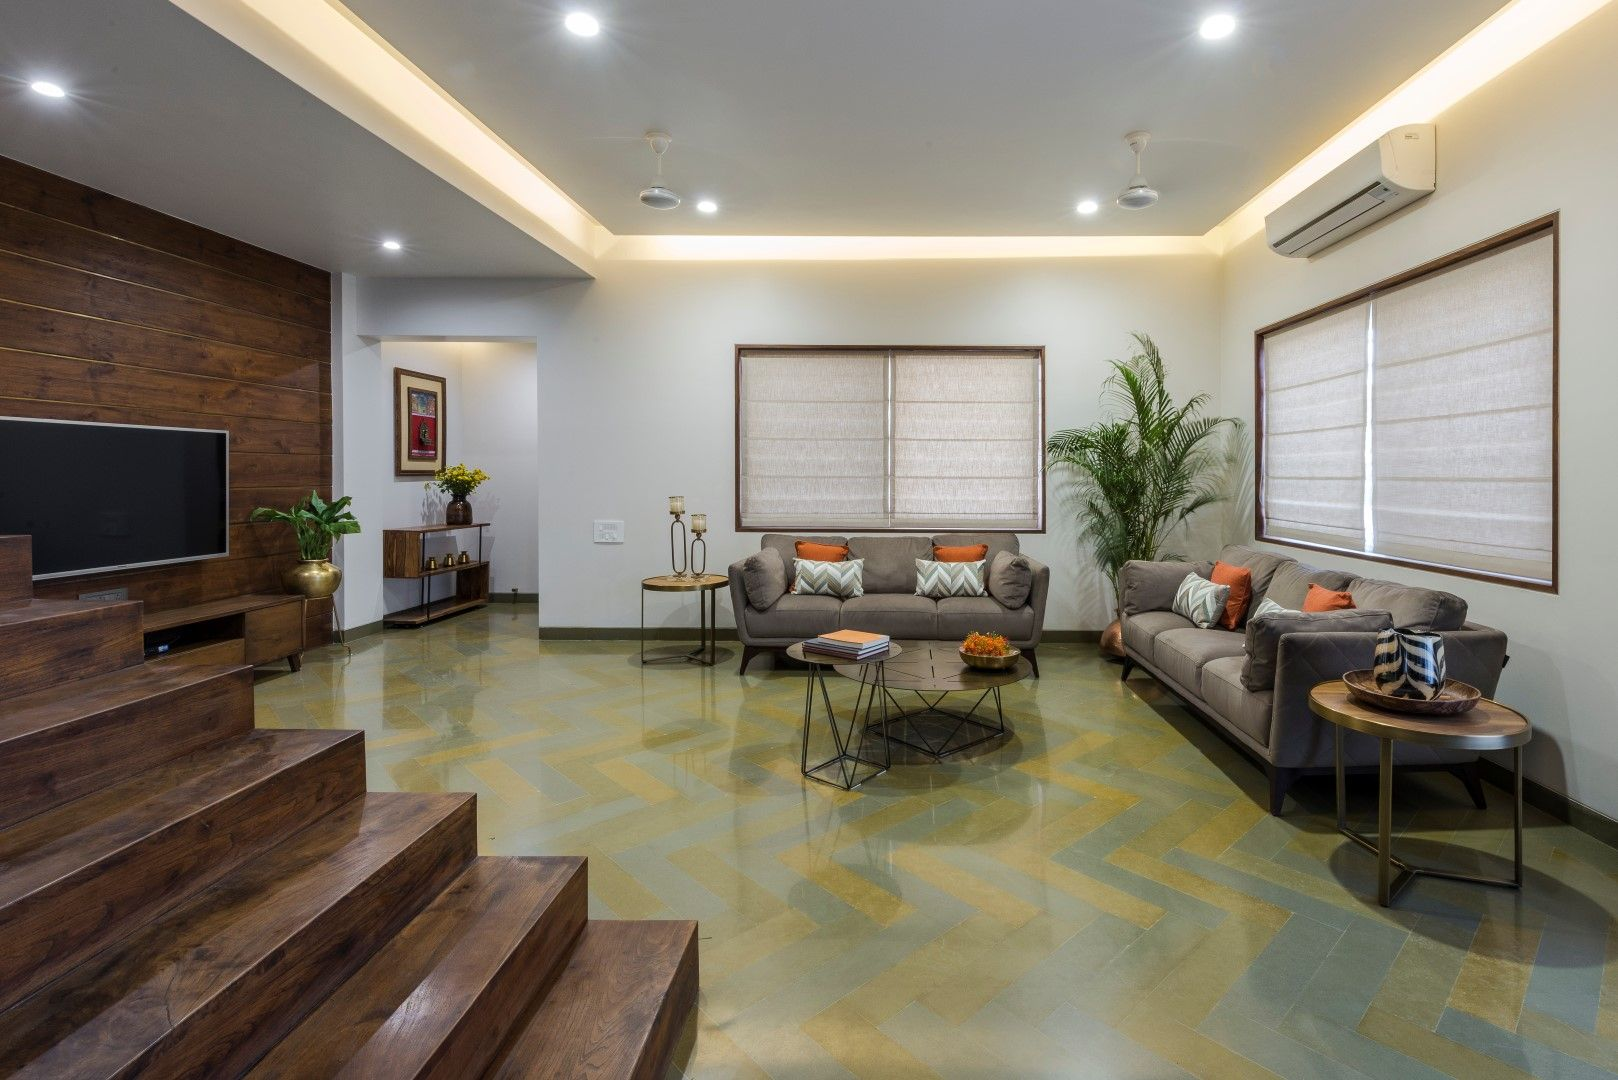 Succinct And Simple Bungalow Design Of Vadodara Studio Yamini The Architects Diary Bungalow Design Bungalow Interiors Modern Interior Design